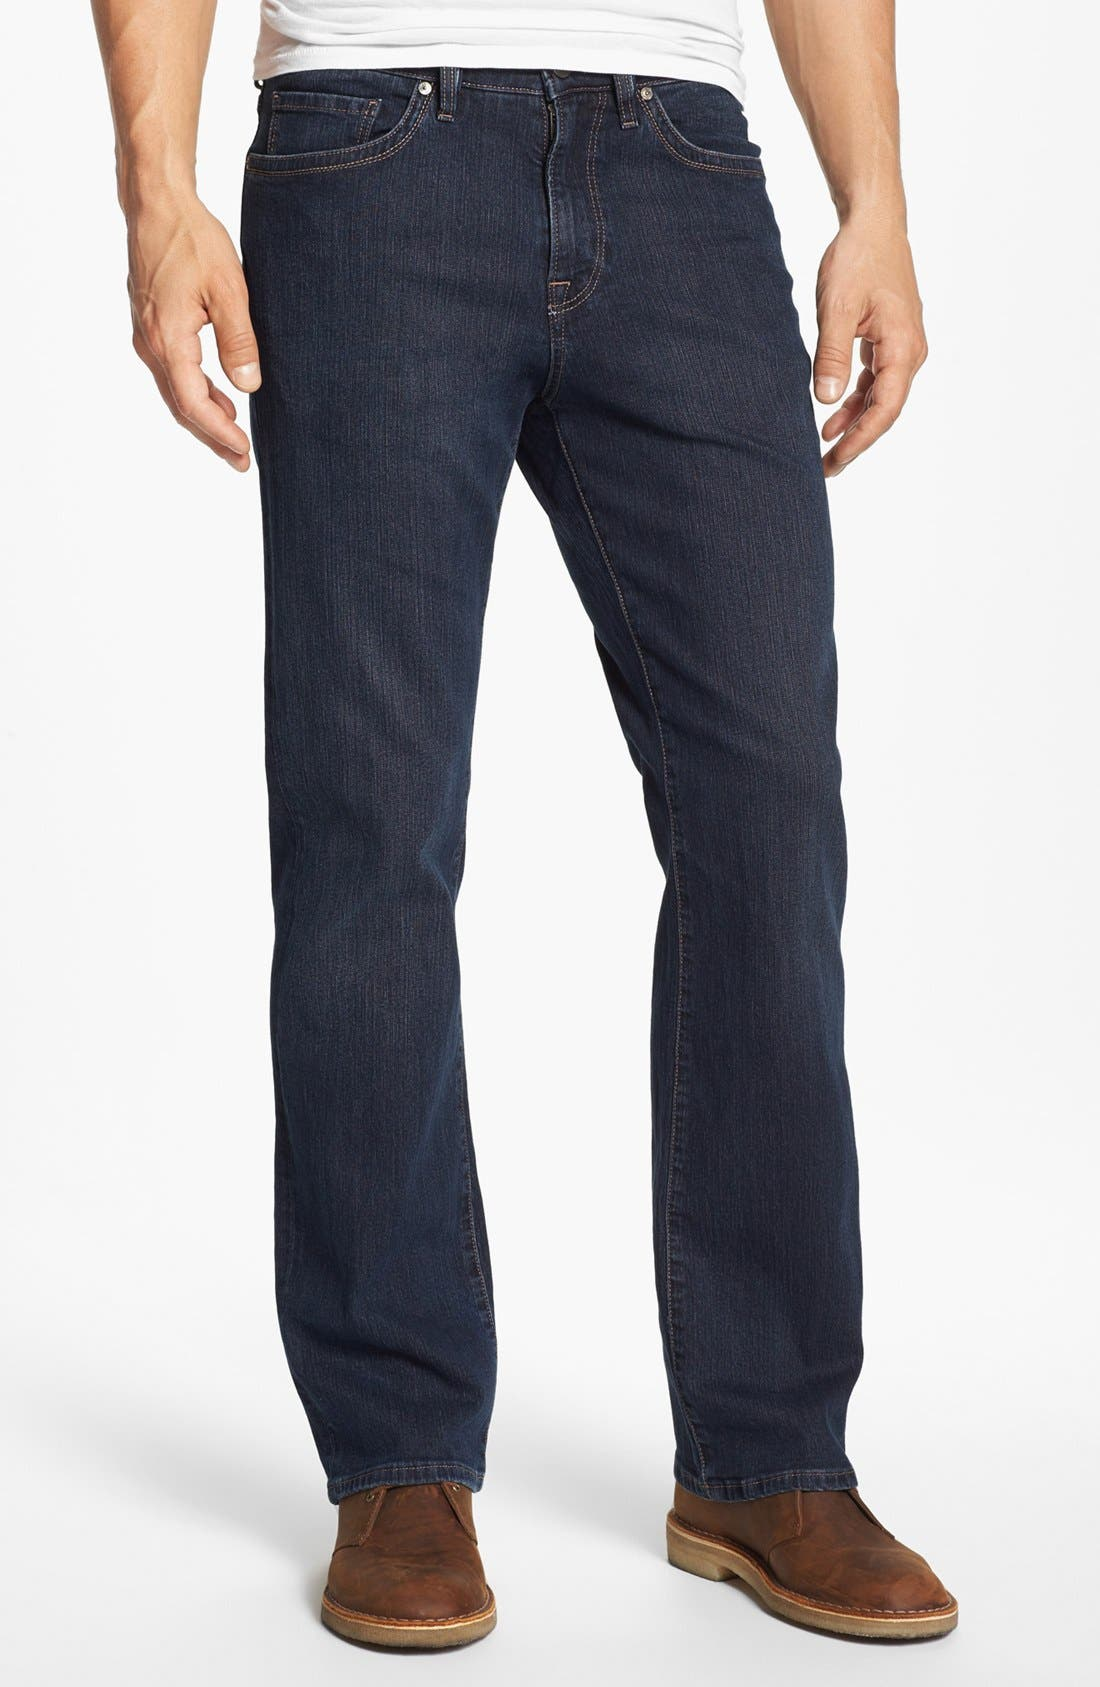 34 Heritage Charisma Relaxed Fit Jeans (Dark Comfort) (Regular & Tall)